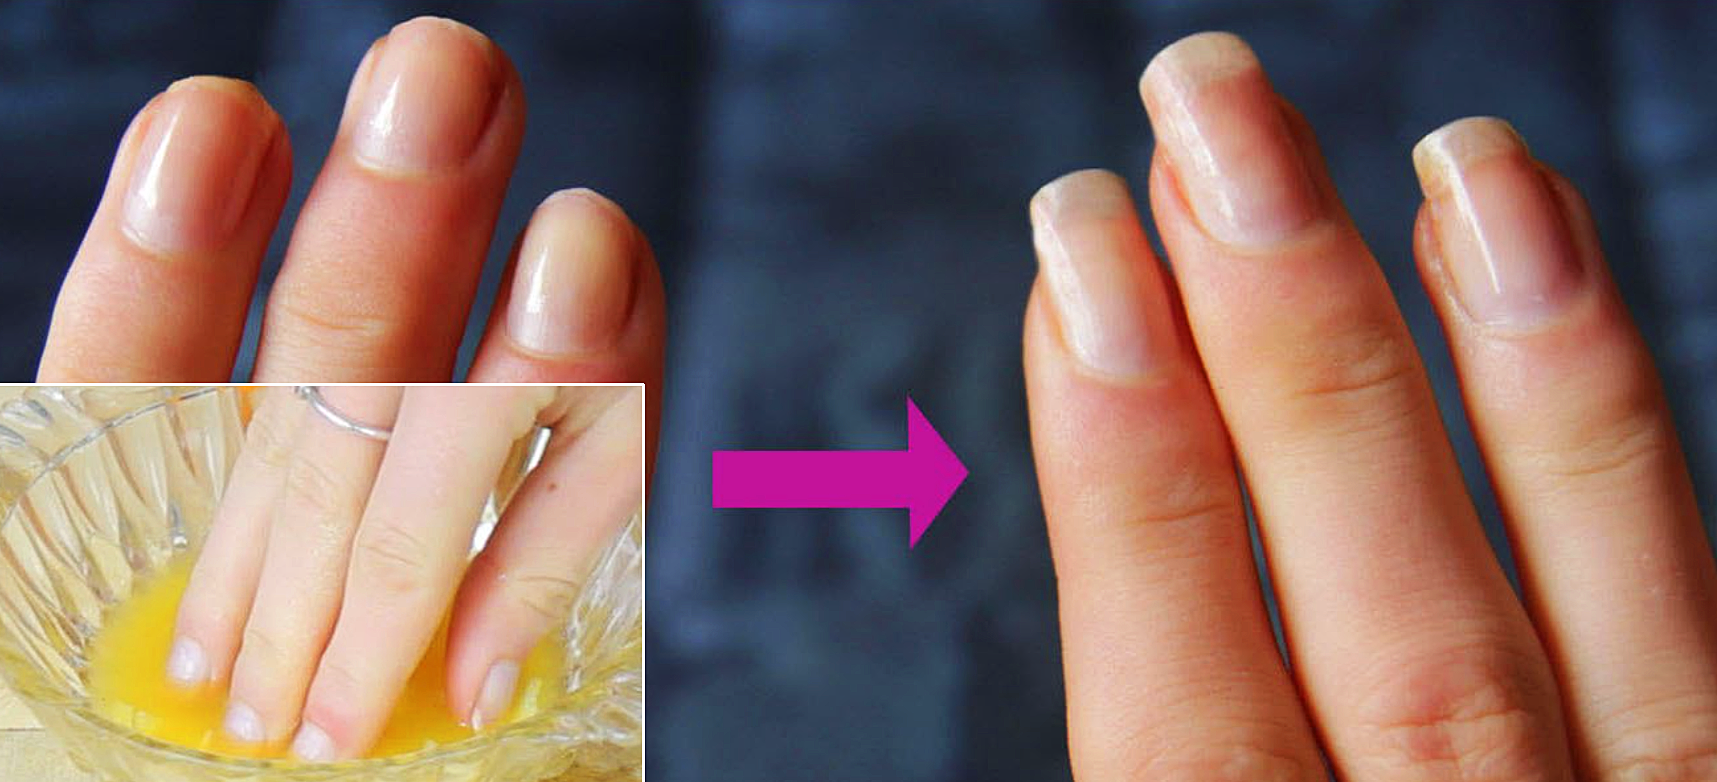 How to strengthen the nails